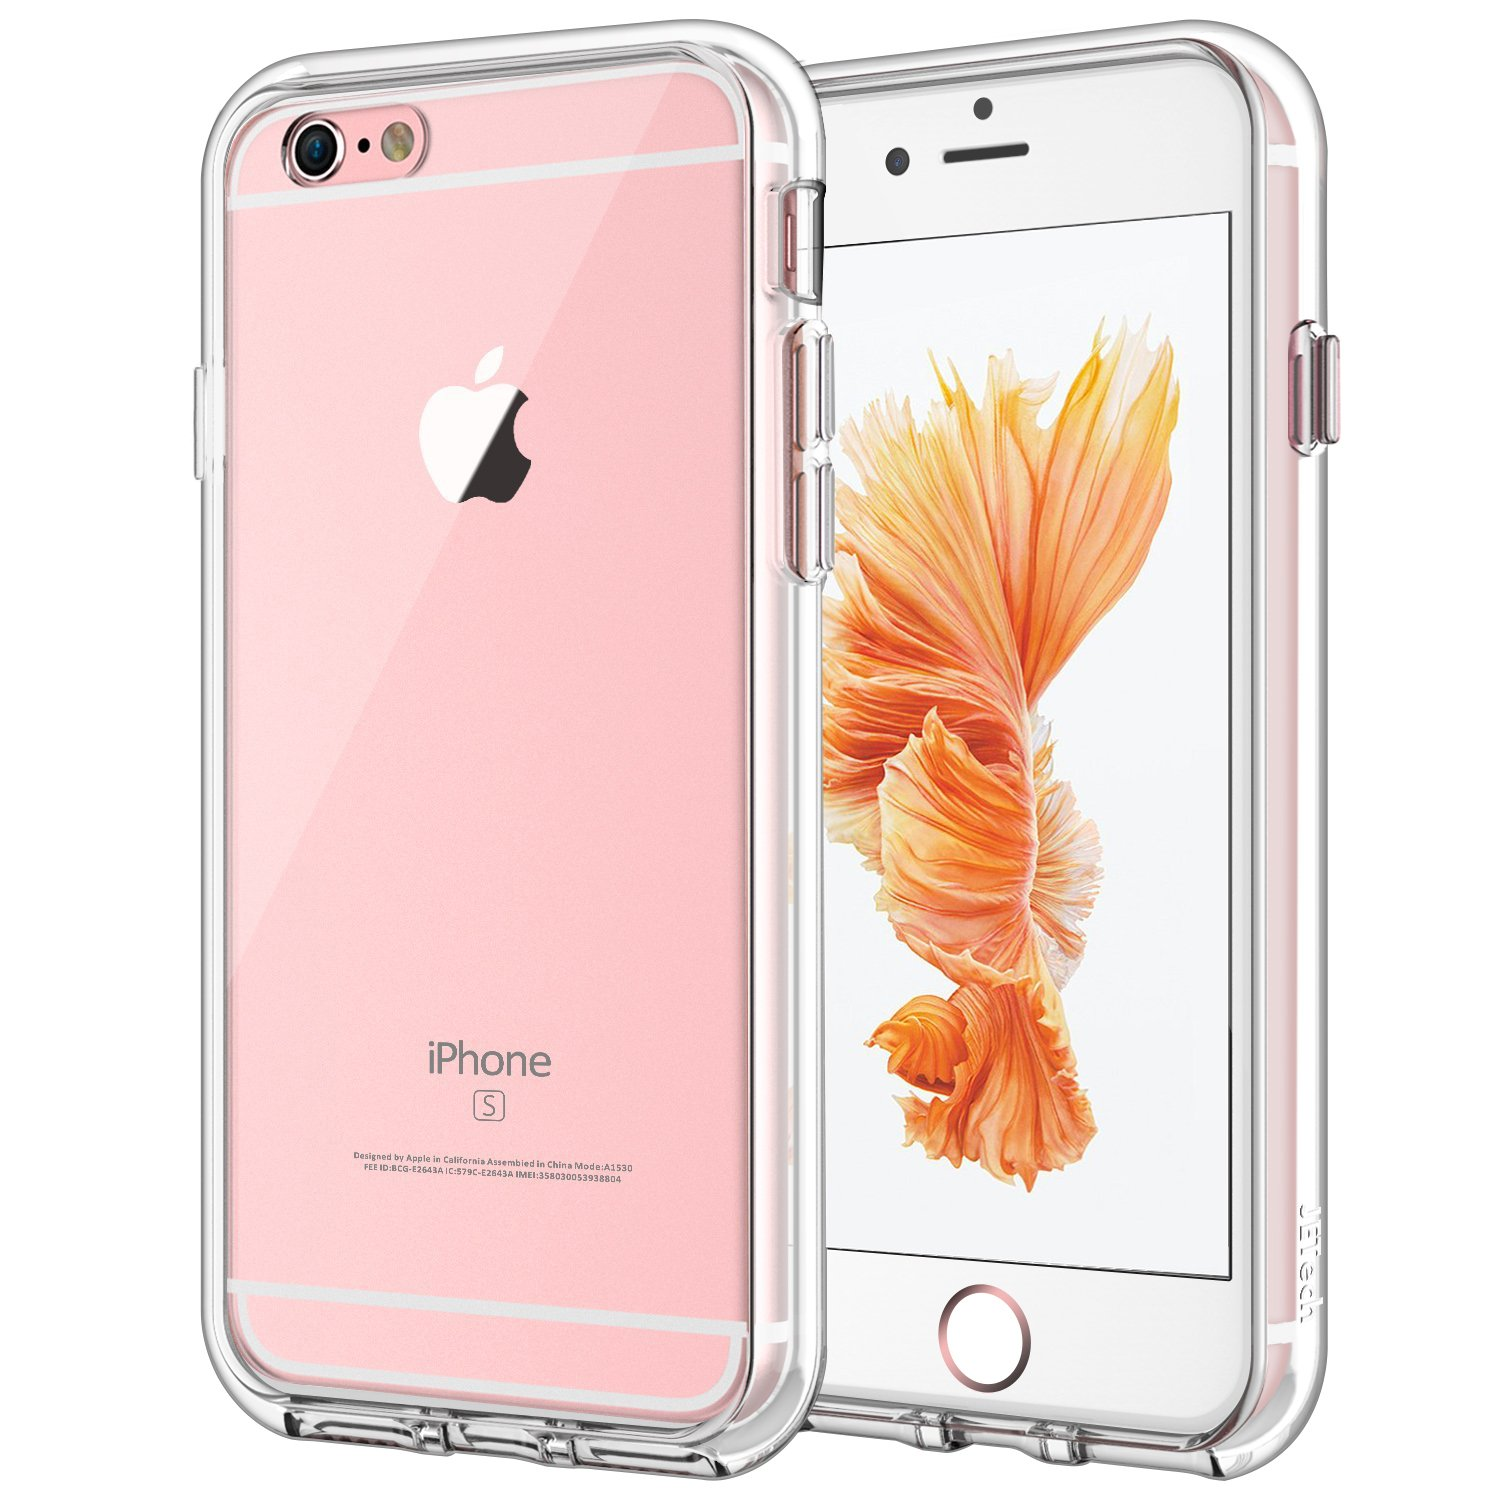 quality design 1b983 1cb71 JETech Case for Apple iPhone 6 Plus and iPhone 6s Plus 5.5-Inch,  Shock-Absorption Bumper Cover, Anti-Scratch Clear Back, HD Clear